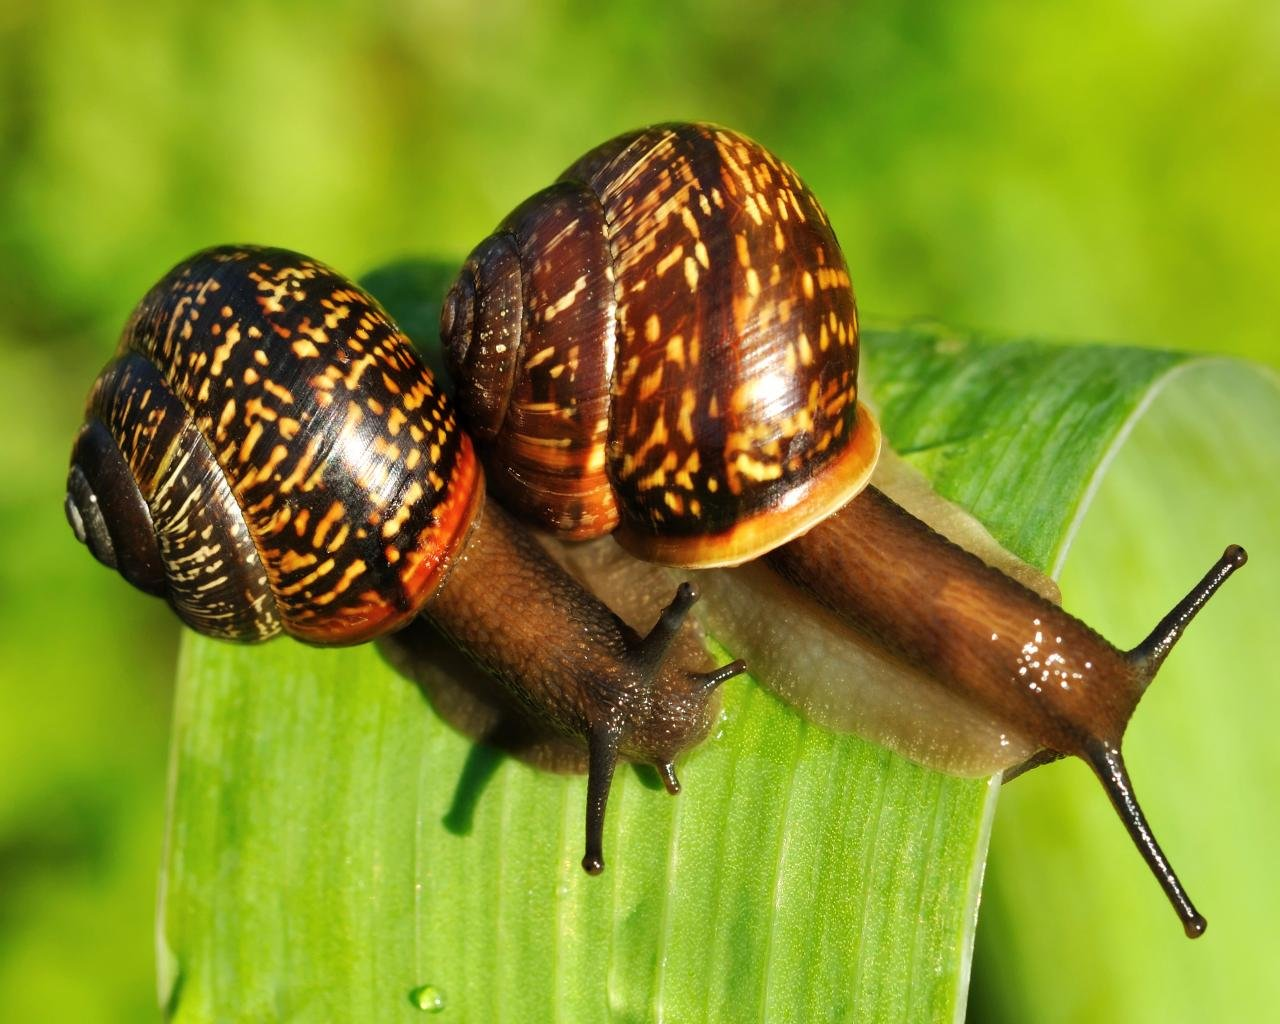 Free download Snail wallpaper ID:198913 hd 1280x1024 for desktop